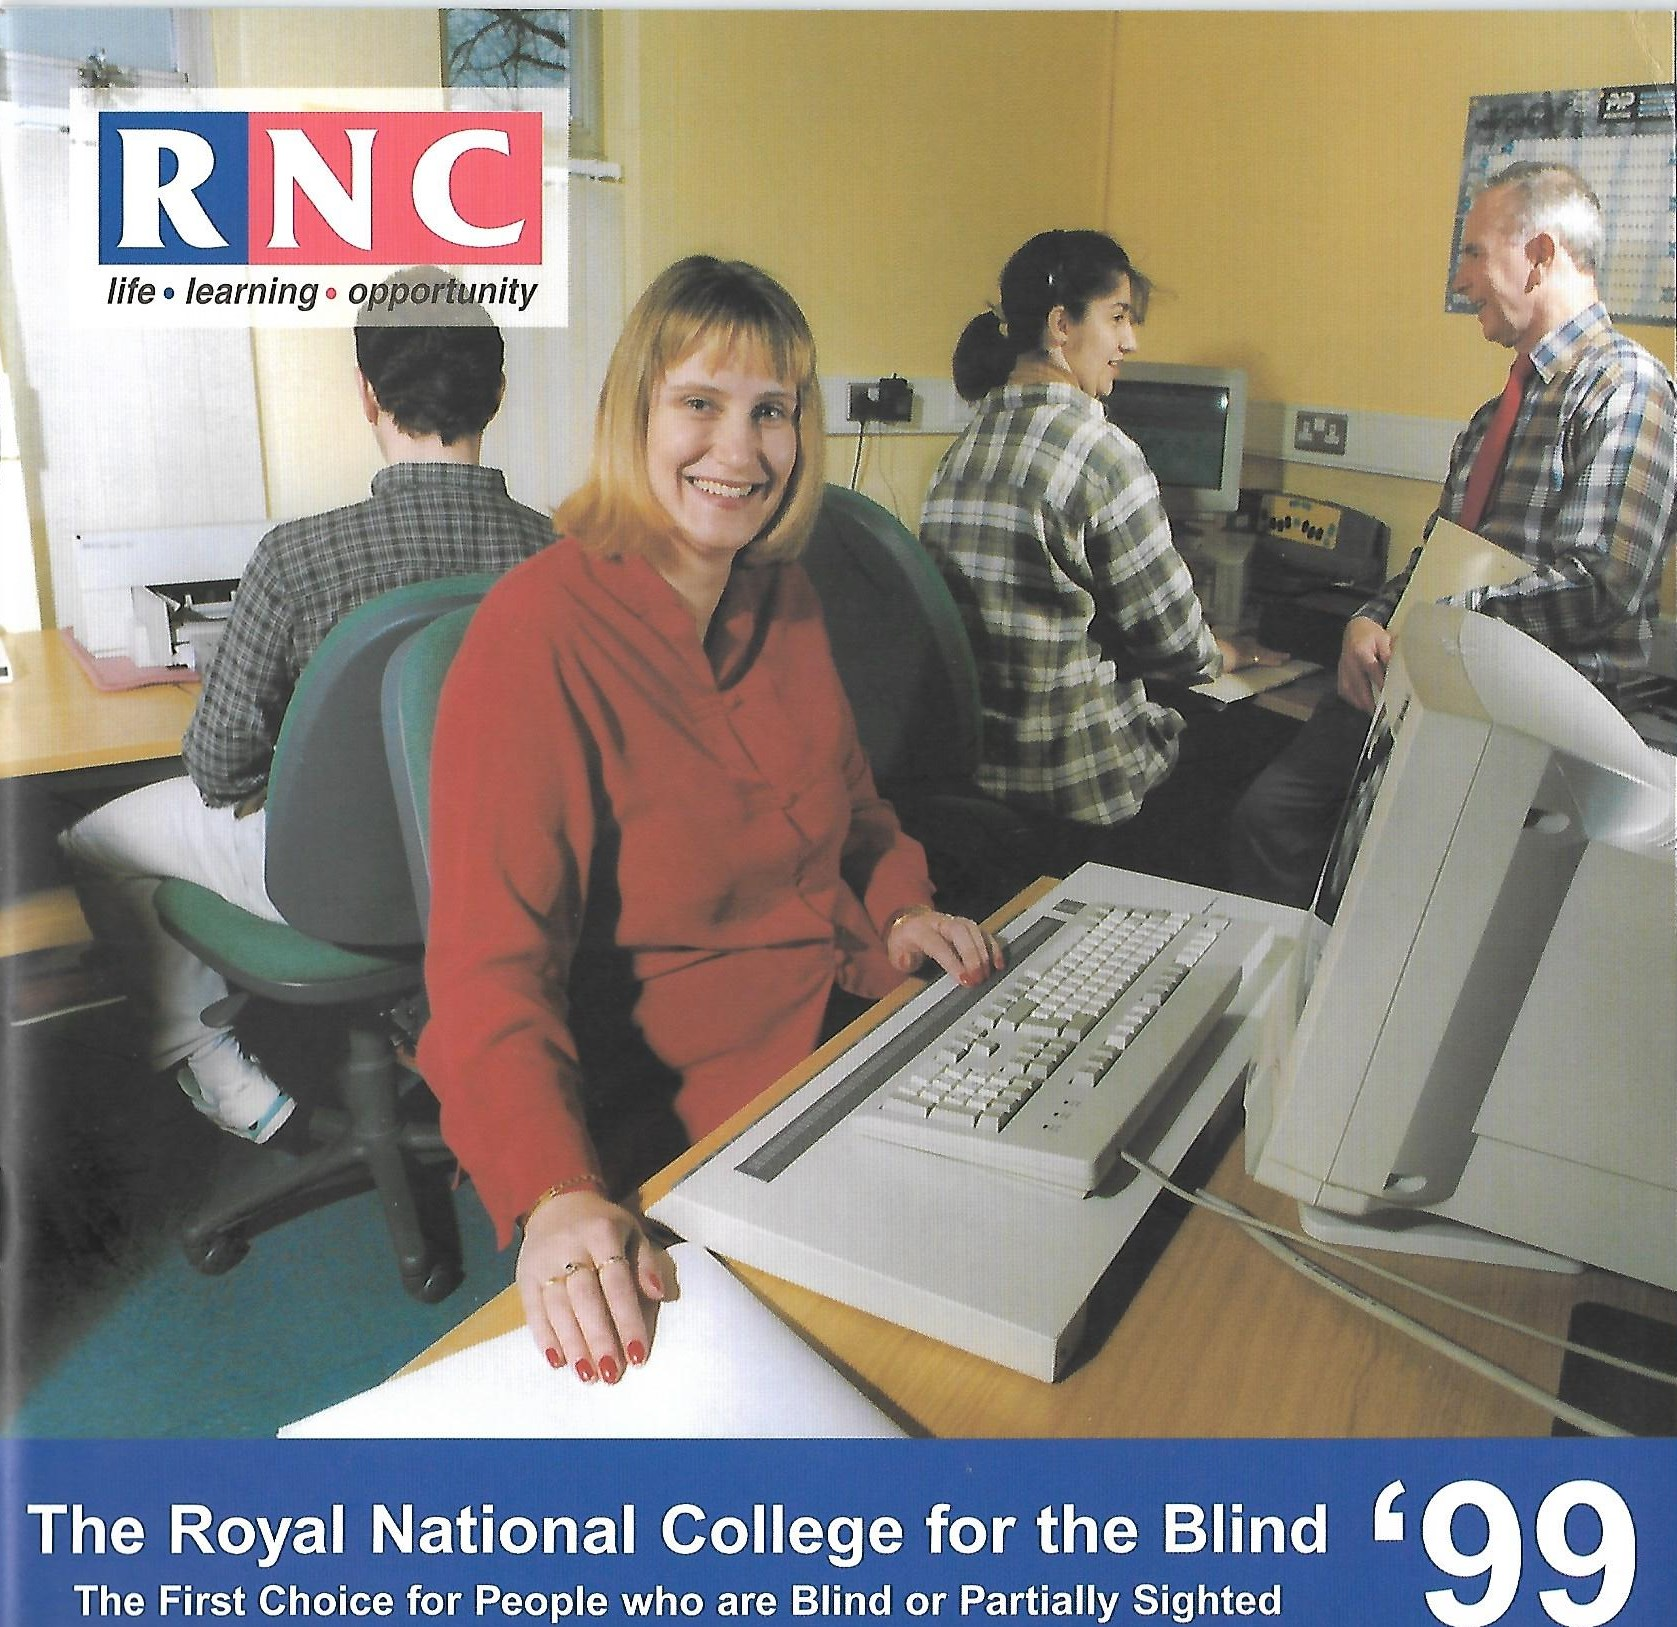 RNC Prospectus 1999, cover featuring staff and students, including Armineh